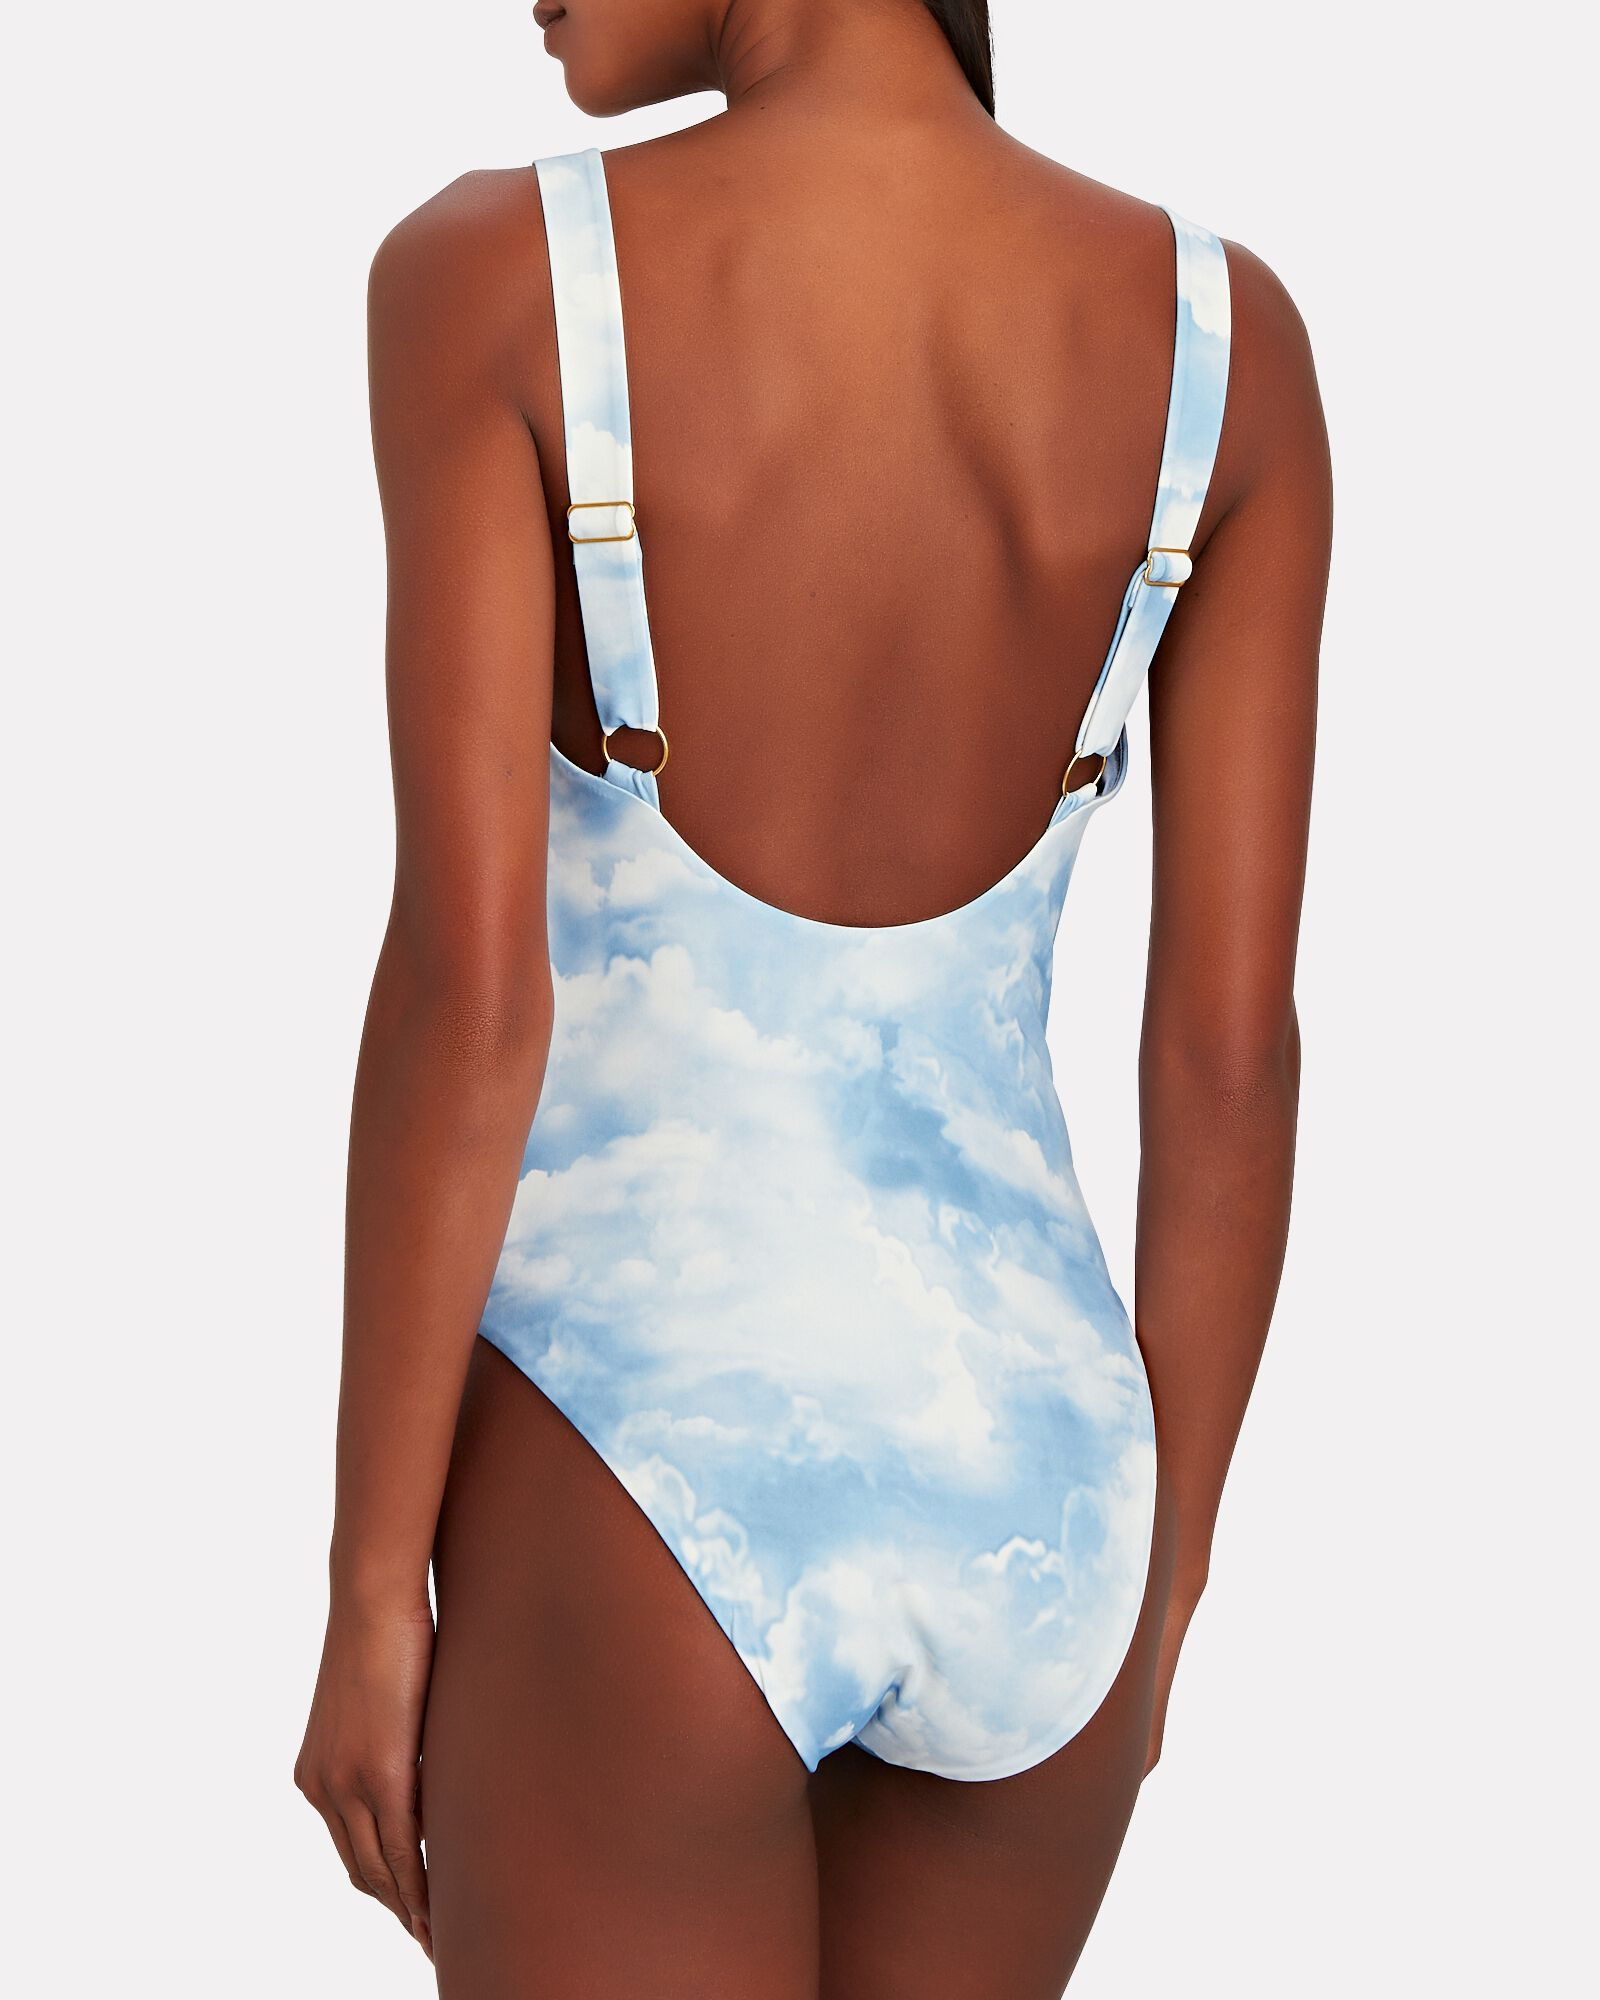 Ruched Cut-Out One-Piece Swimsuit, LIGHT BLUE, hi-res